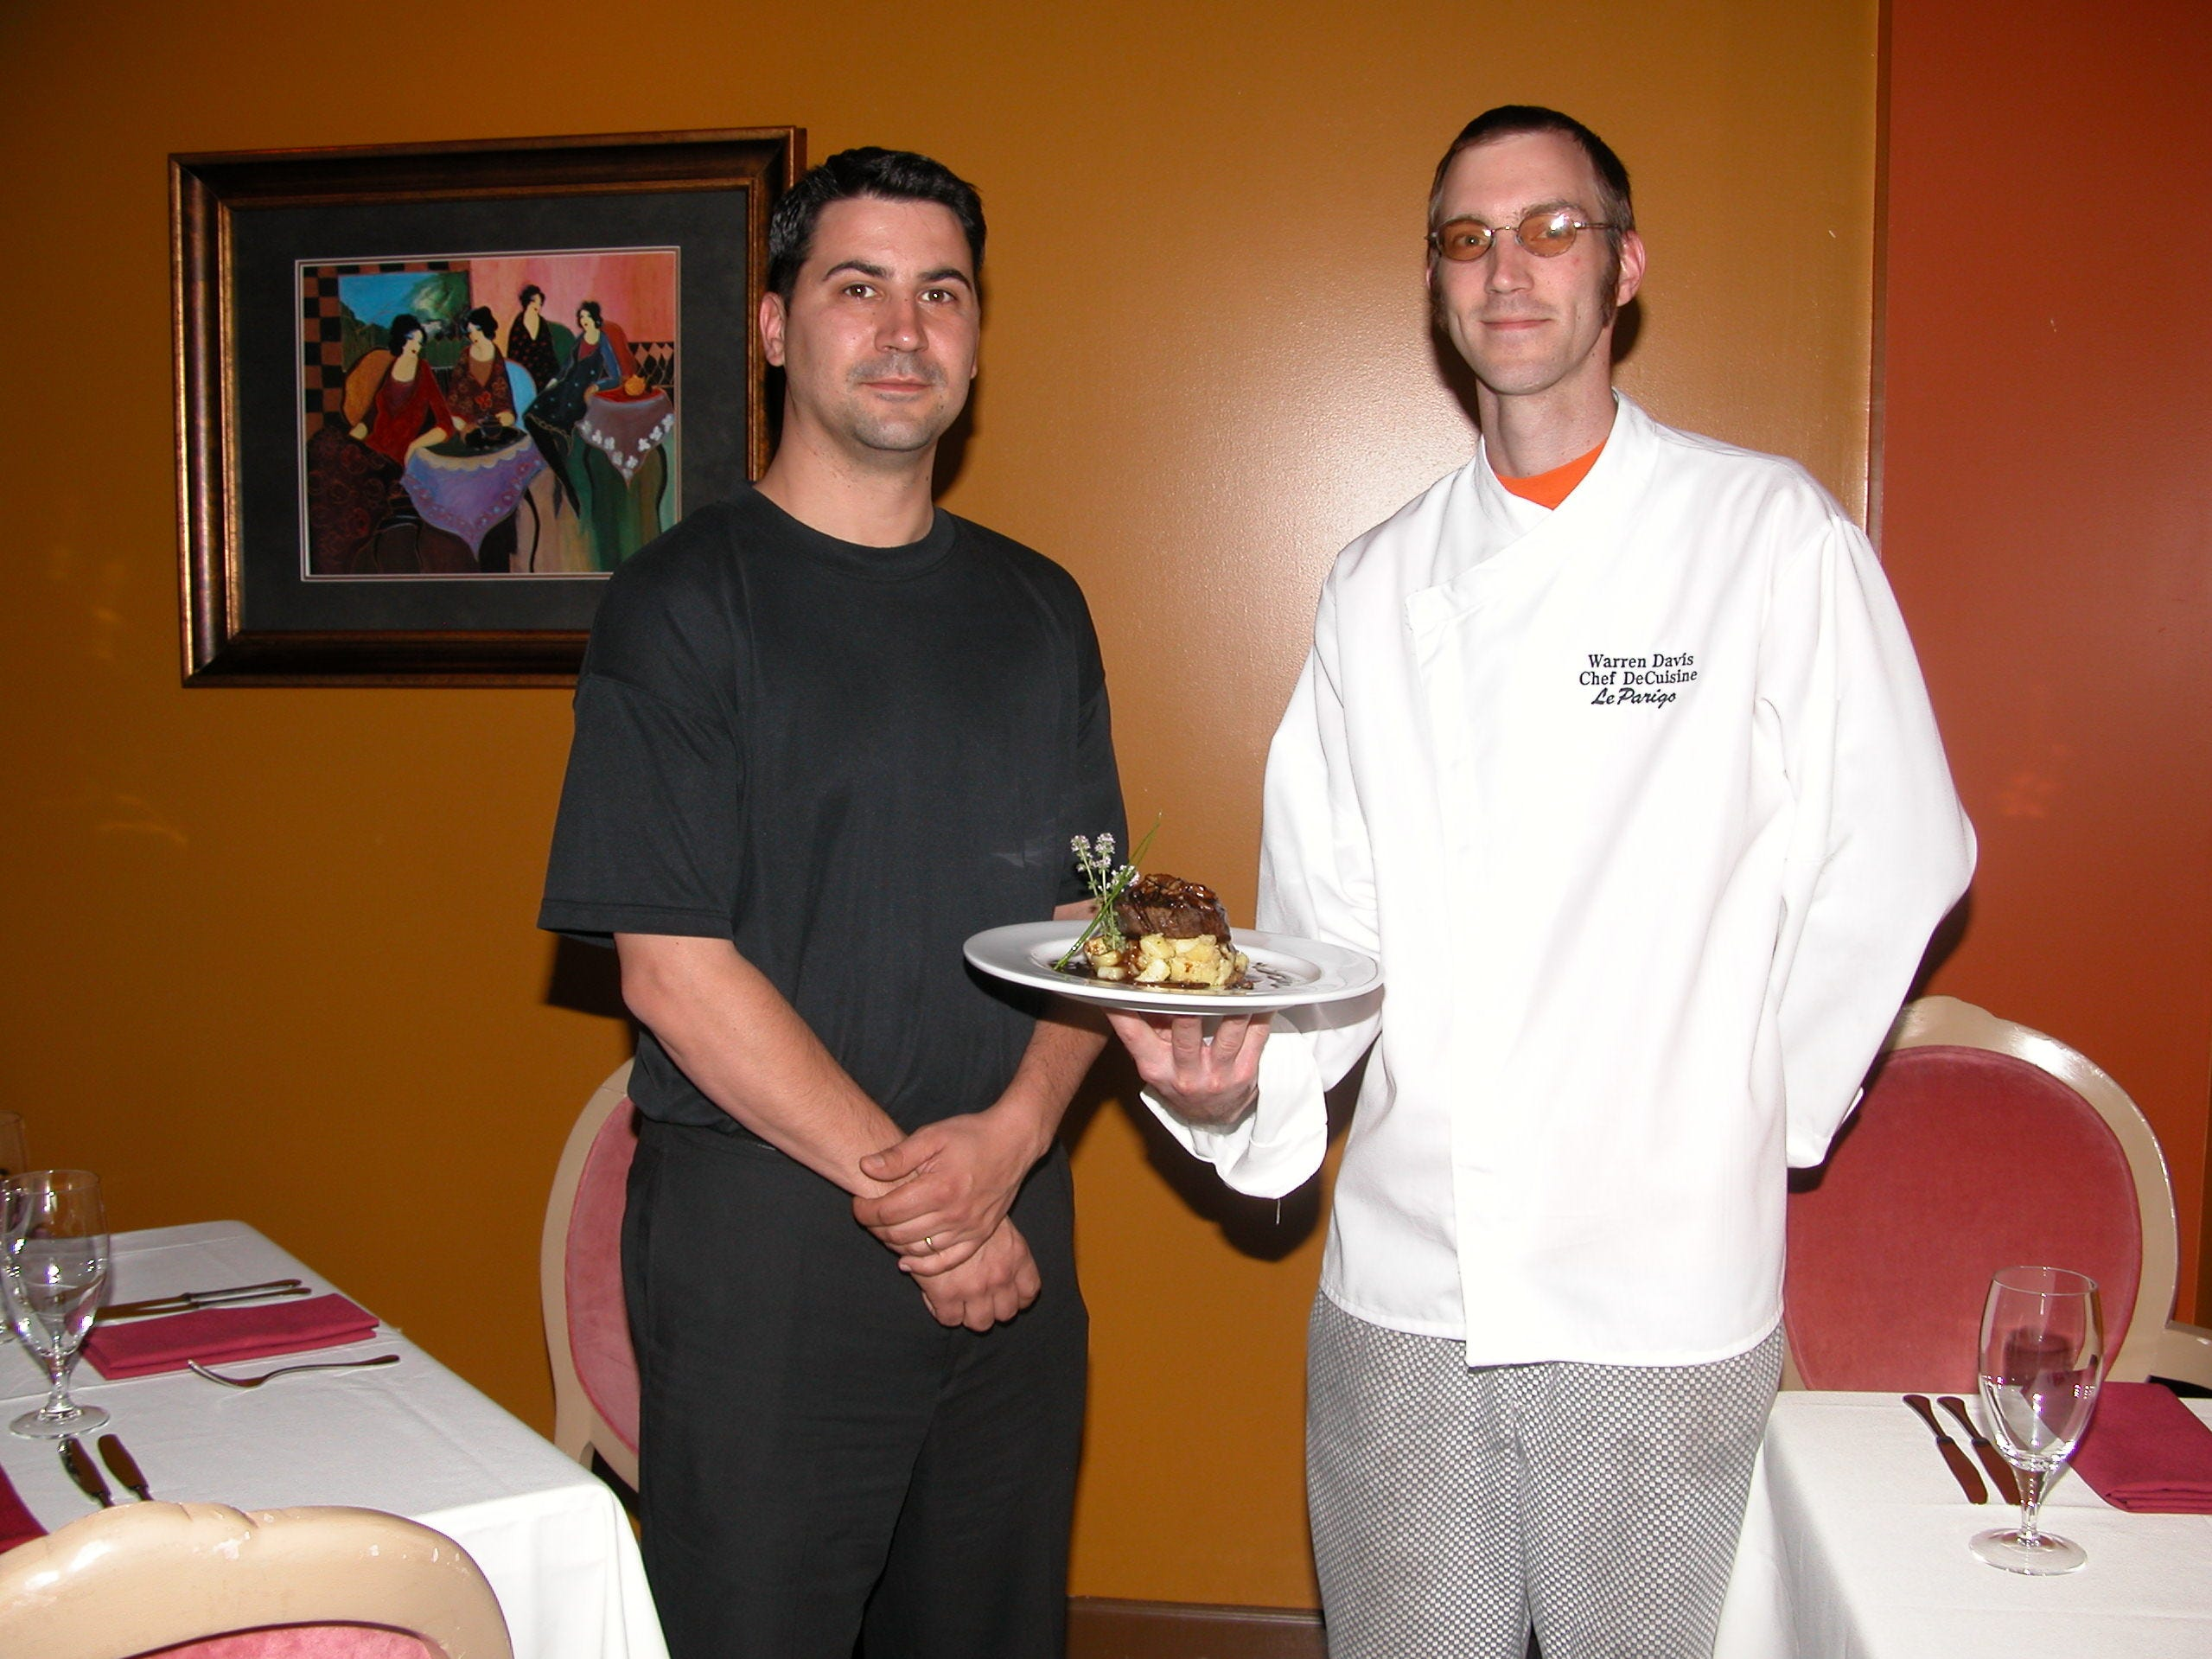 Cedric Coant, left, is the owner of Le Parigo in Bearden in 2006. At right is Chef Warren Davis with a newly prepared filet mignon.